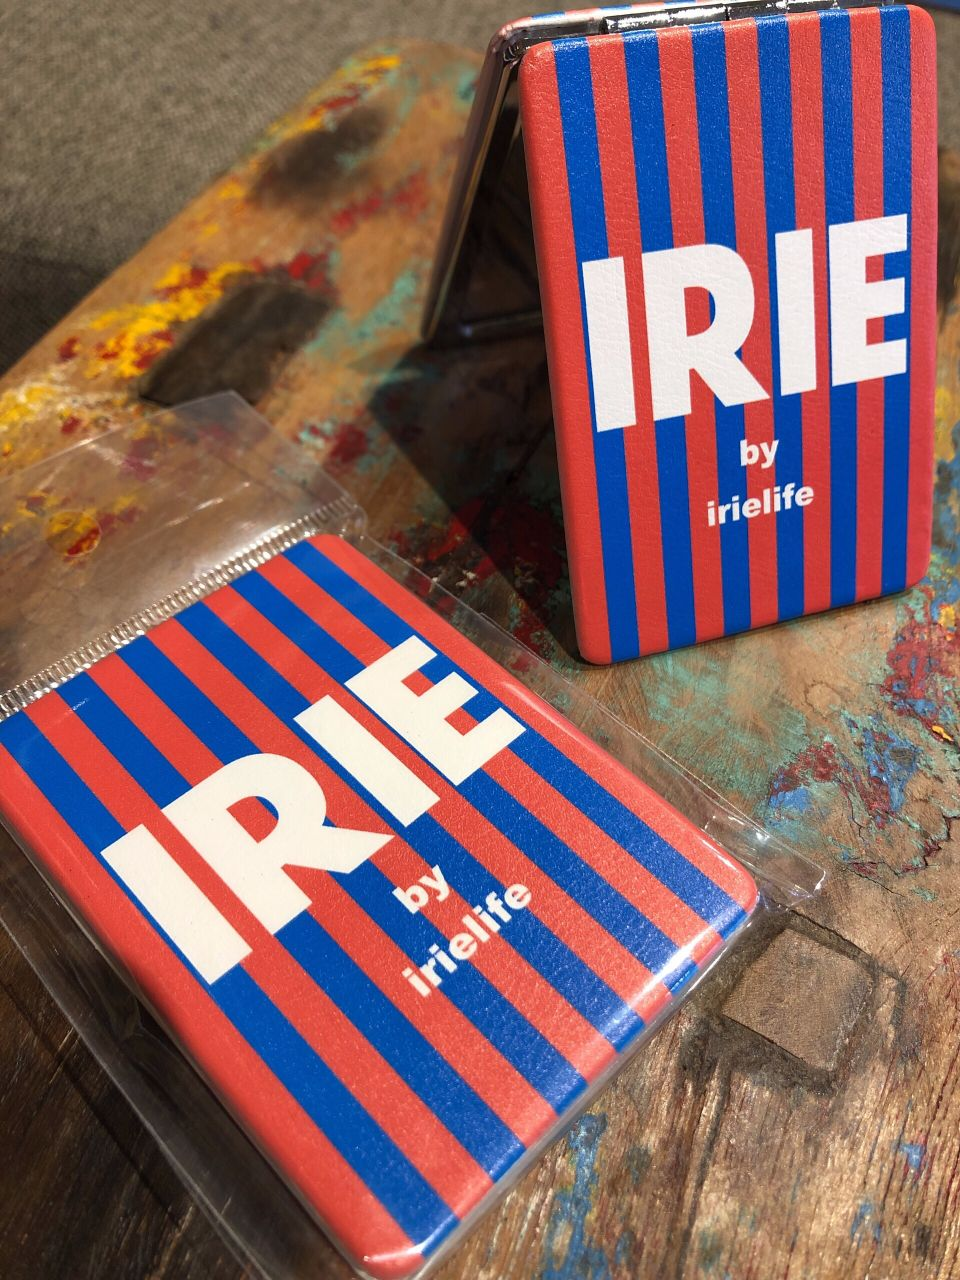 IRIE by irielife 再入荷ITME☆